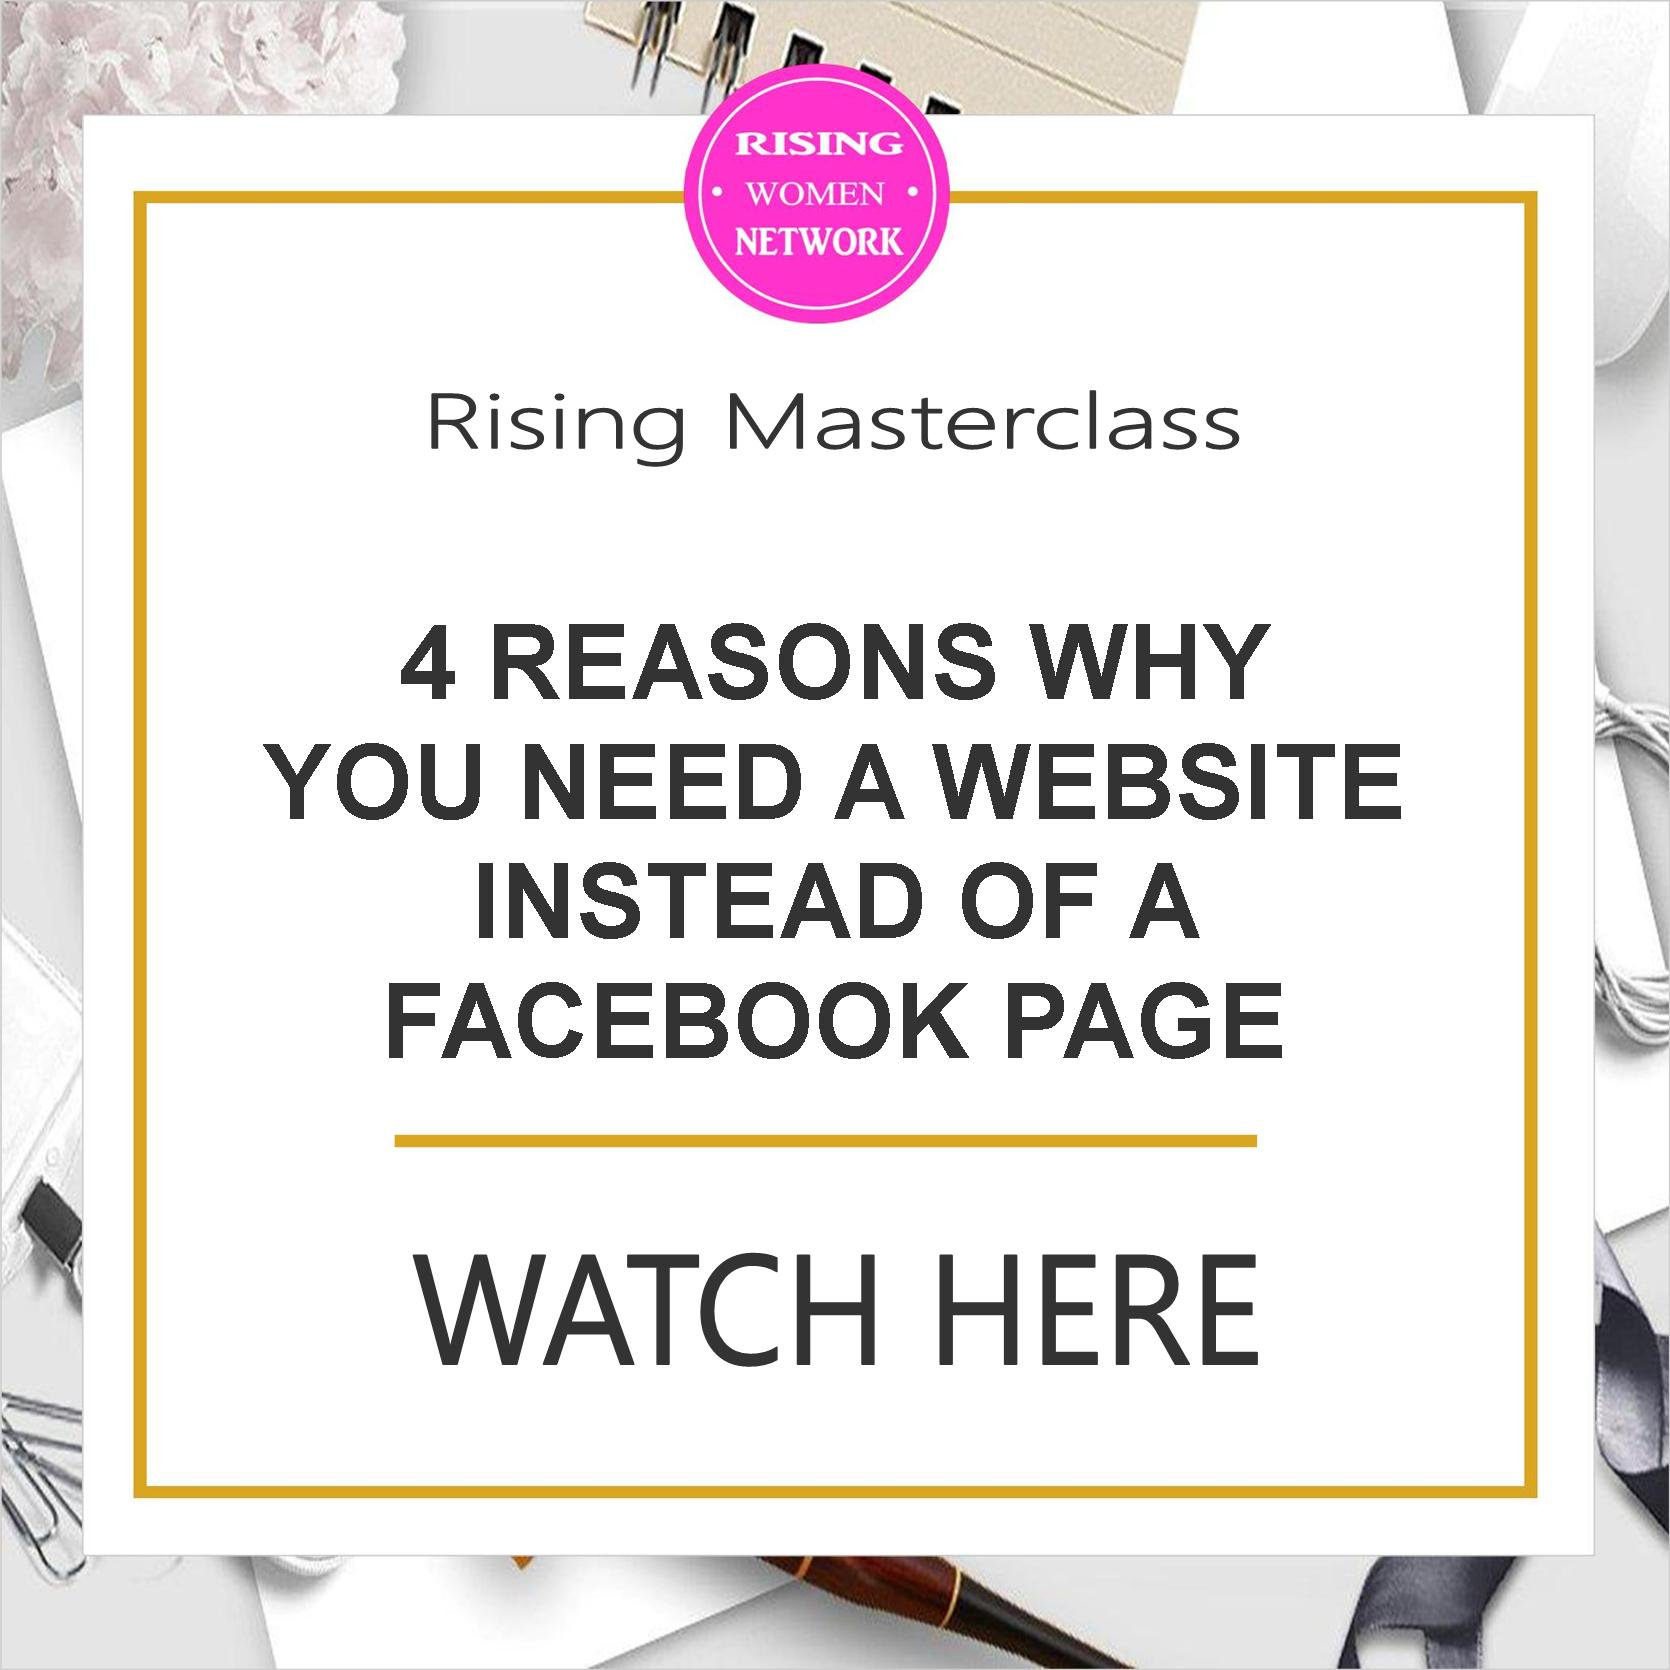 4 Reasons why you need a website instead of a Facebook page